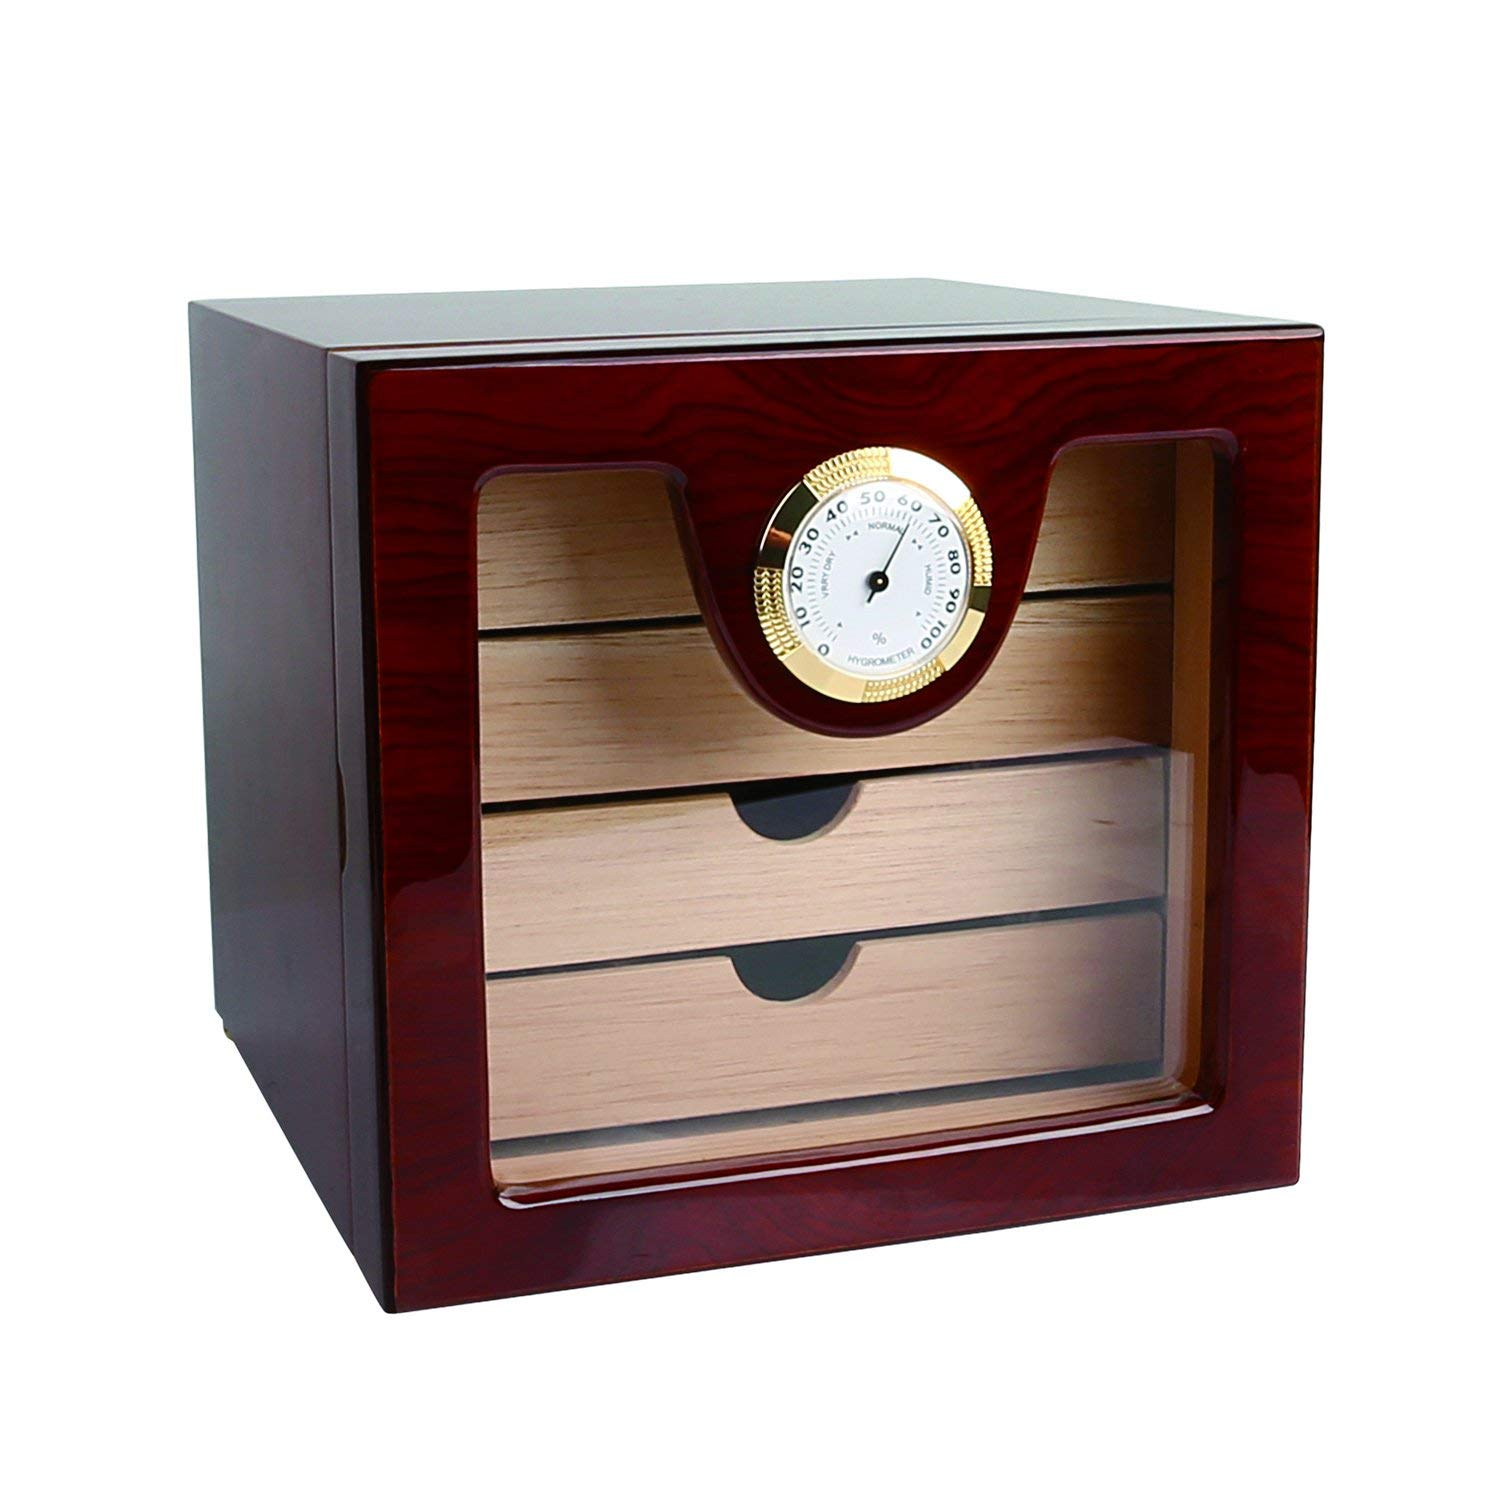 Woodronic Medium Cigar Cabinet Humidor with Hygrometer and Humidifier, Spanish Cedar Wood Lined and 4 Layer Drawers, Acrylic Glass Door, Decent Cigar Box Set, Rosewood by Woodronic